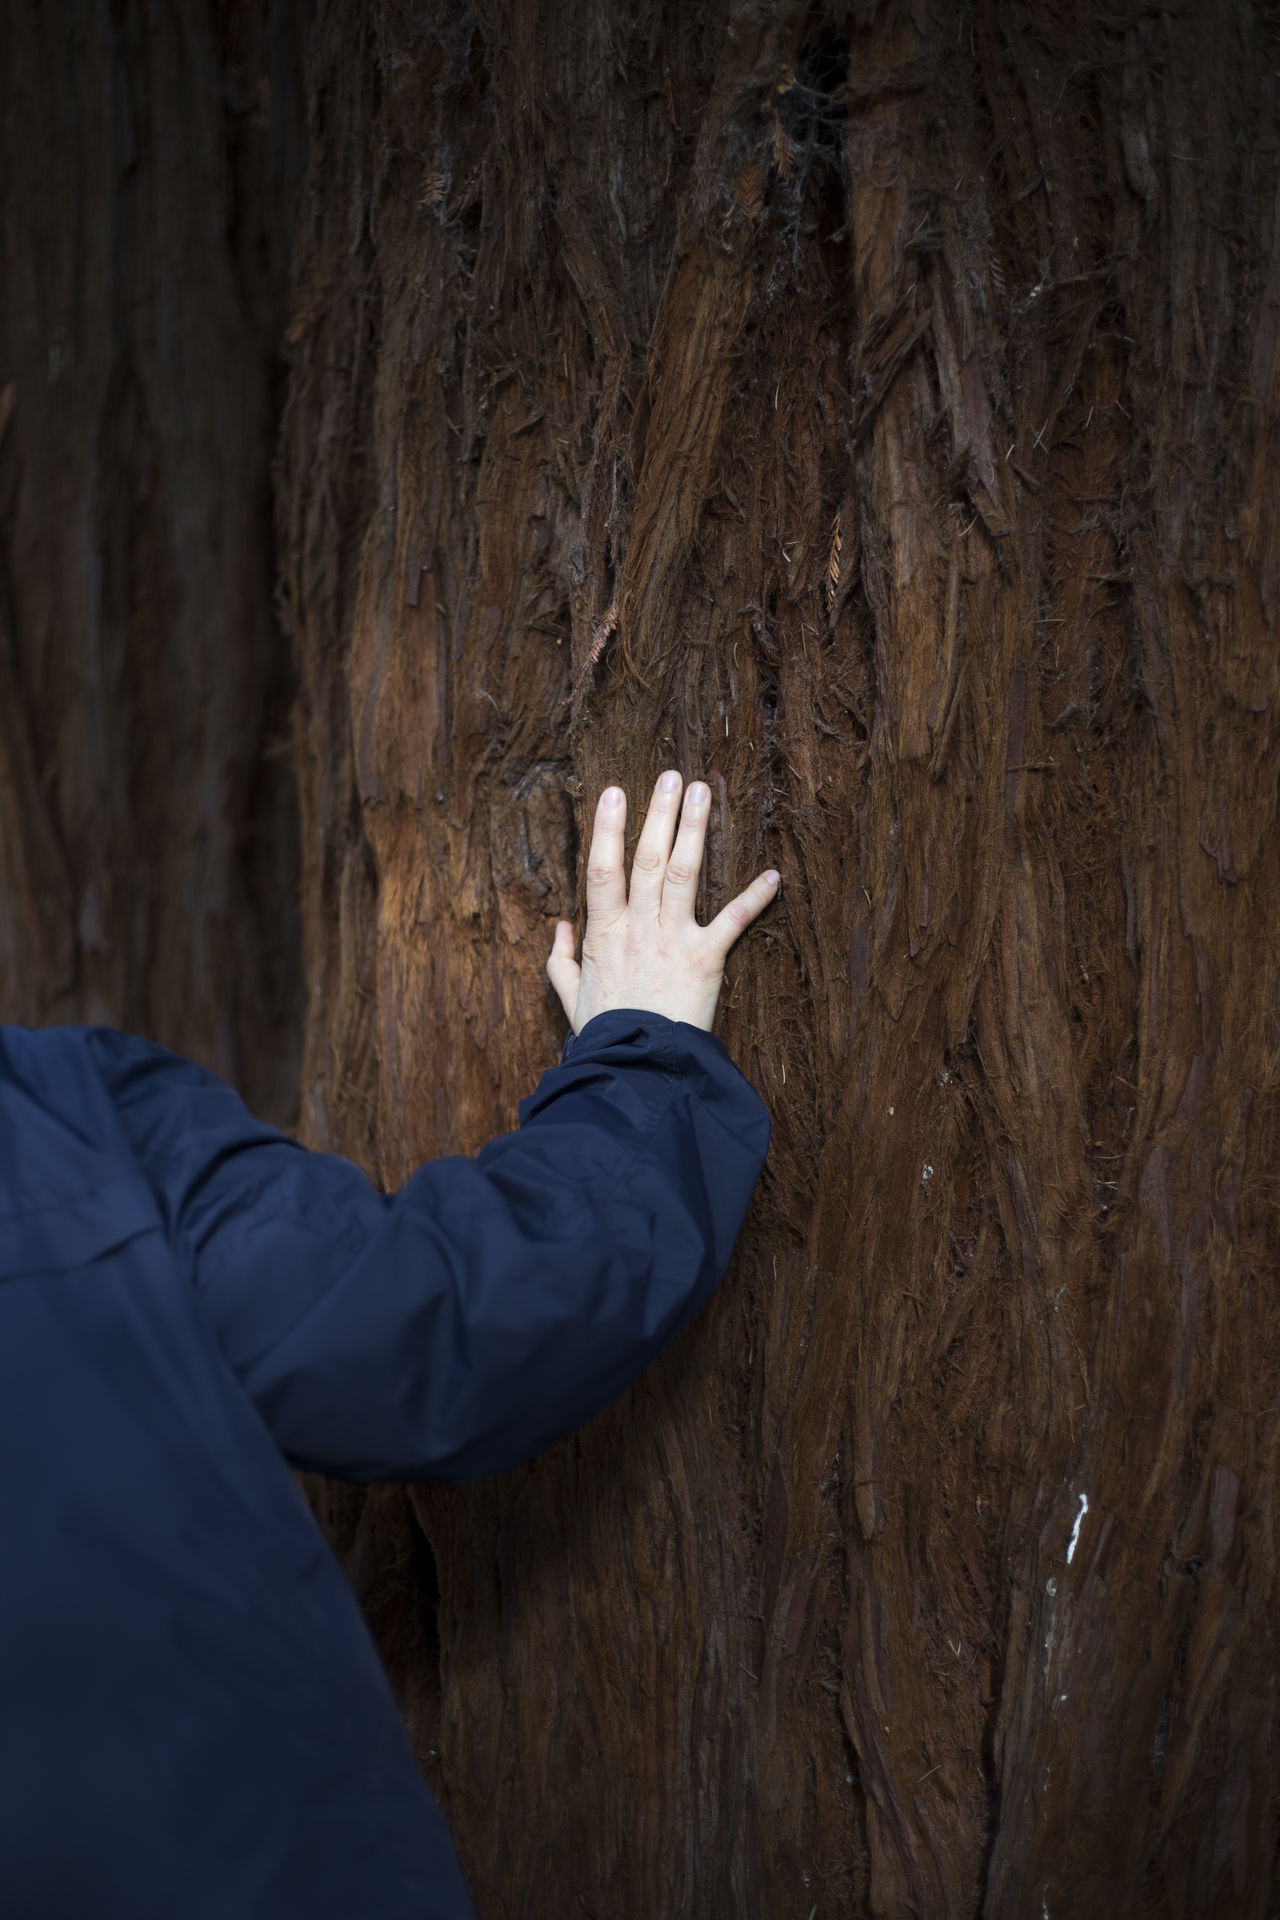 Adult Adults Only Adventure Big Tree Day Feel Feel The Nature Human Body Part Human Hand Nature Nature_collection One Man Only One Person Only Men Outdoors People Real People Sequoia Touch The Sky Tree